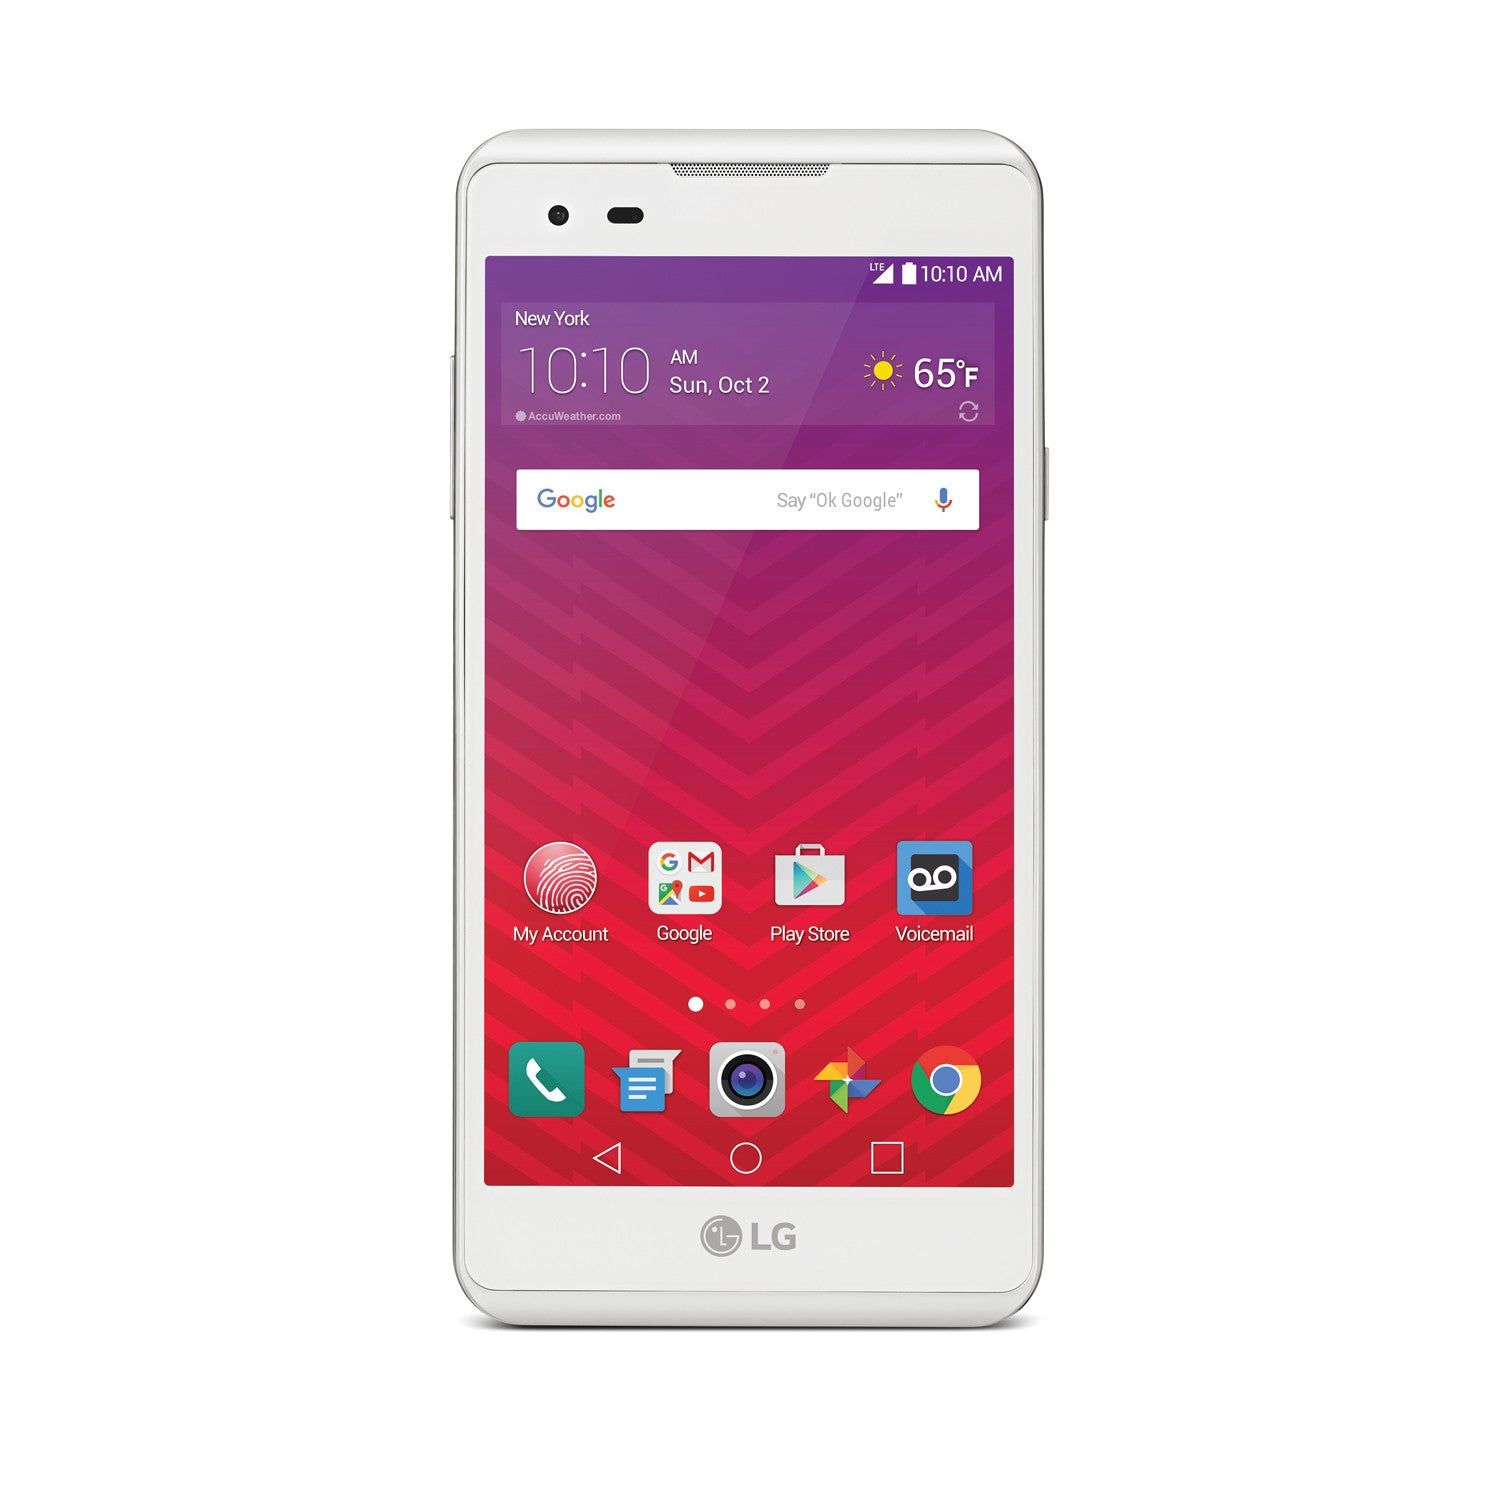 LG Tribute HD 16GB LTE Smartphone for Virgin Mobile - shopcelldeals - 1